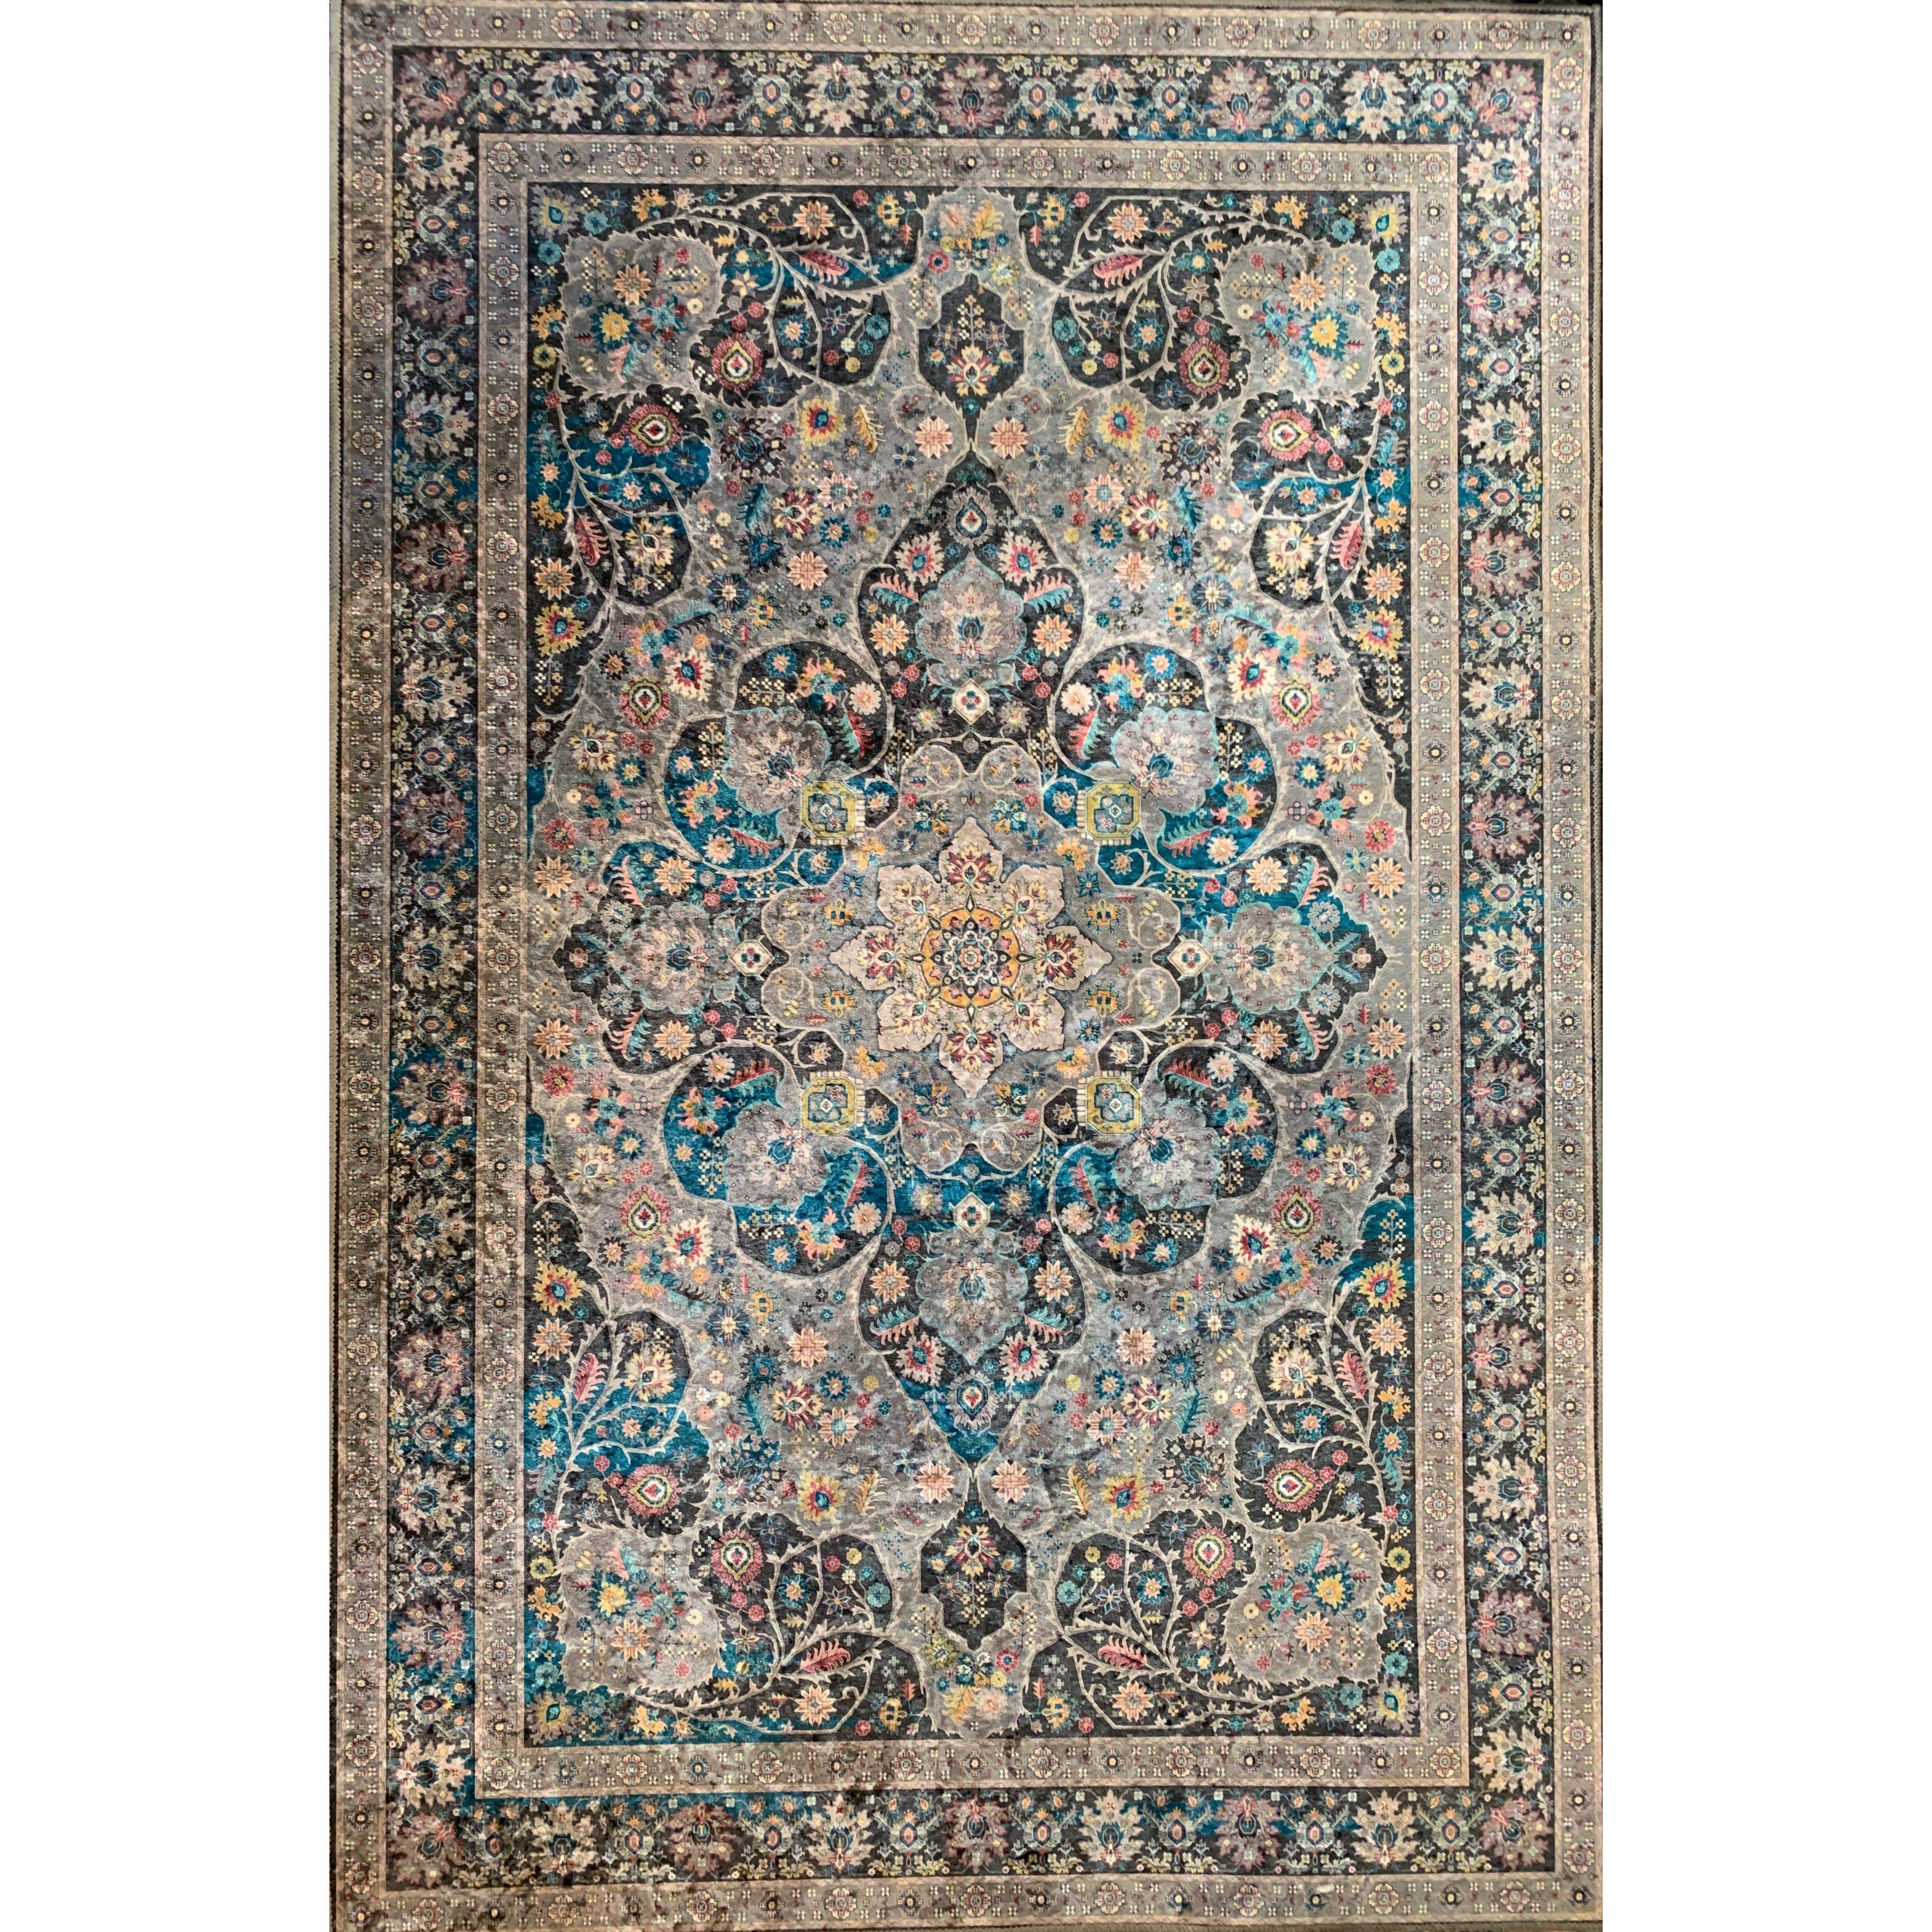 Emerald Collection Grey / Blue Rug 2ft2in x 3ft2in